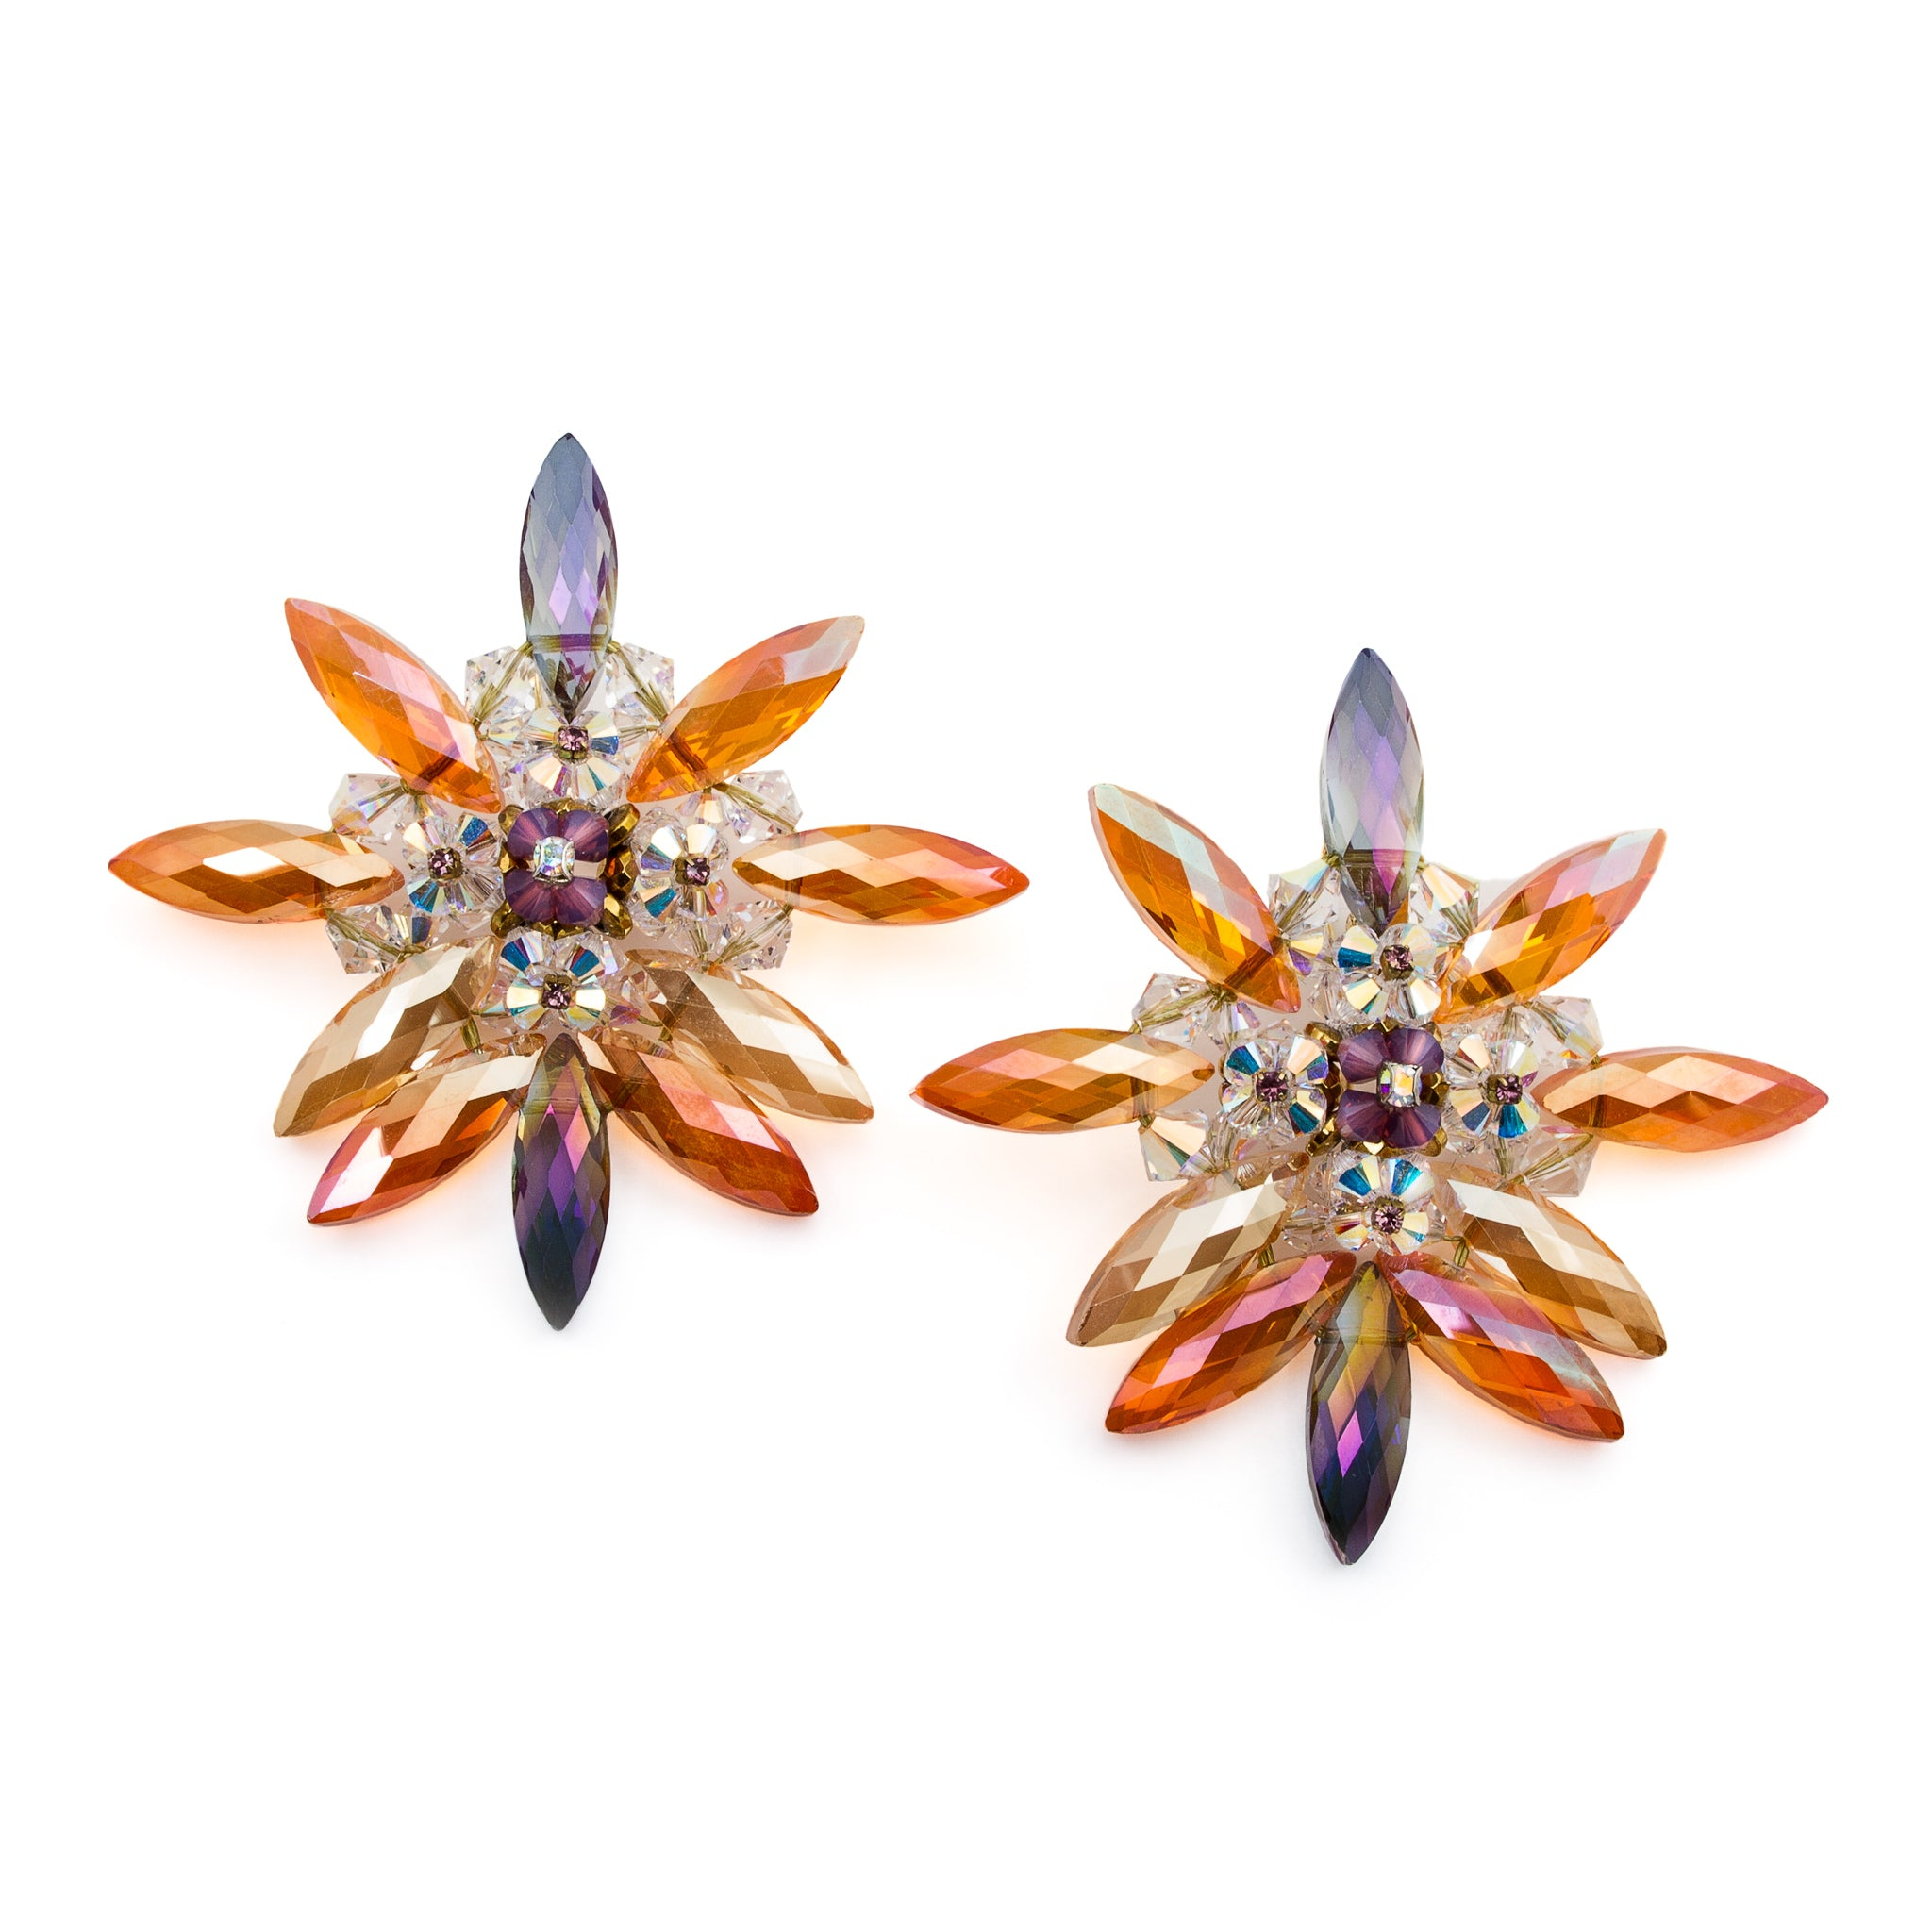 'Fire Star' Earrings